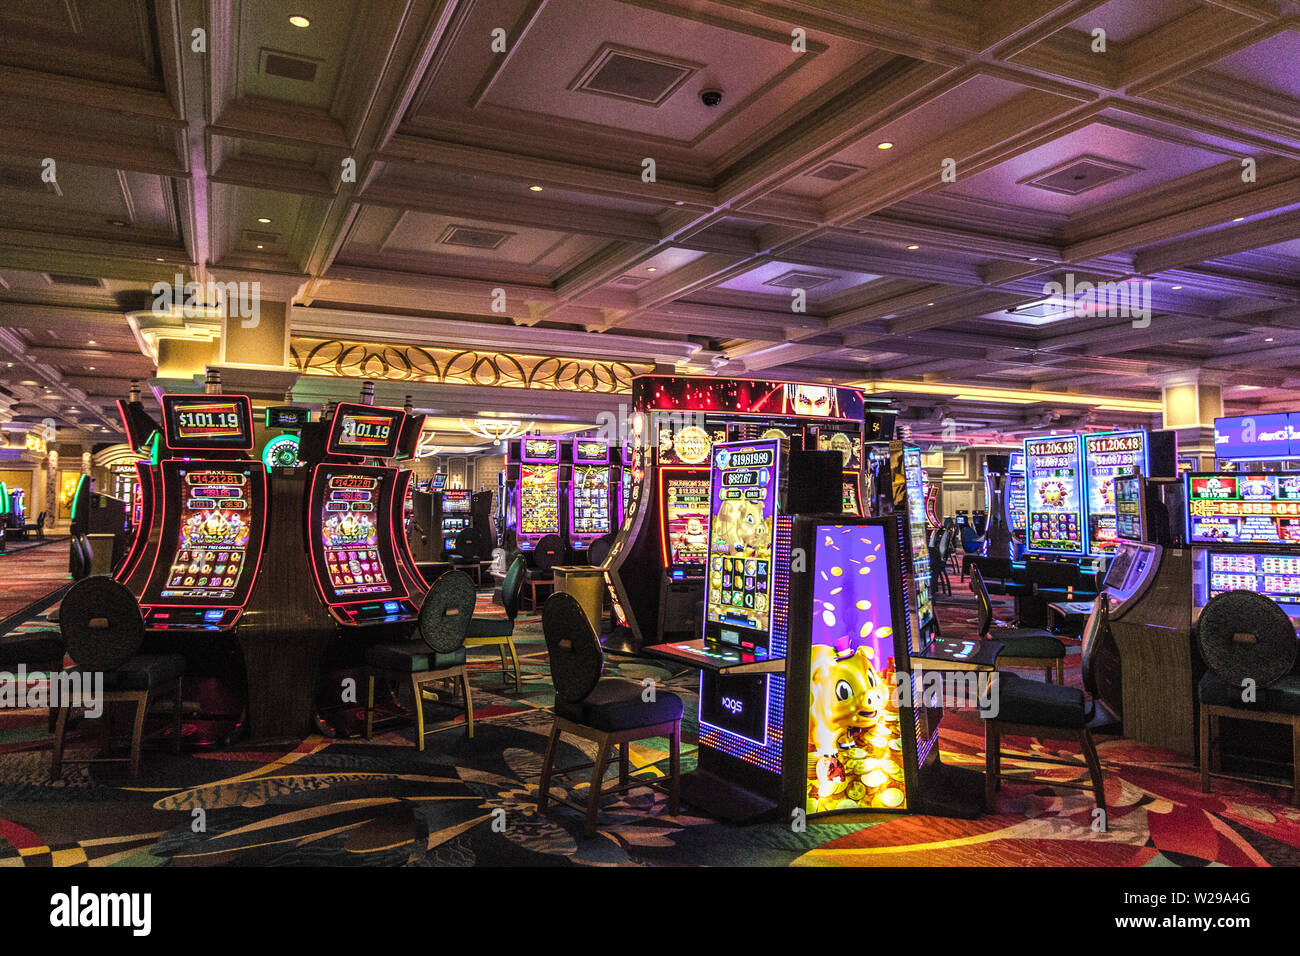 Video Slots High Resolution Stock Photography And Images Alamy